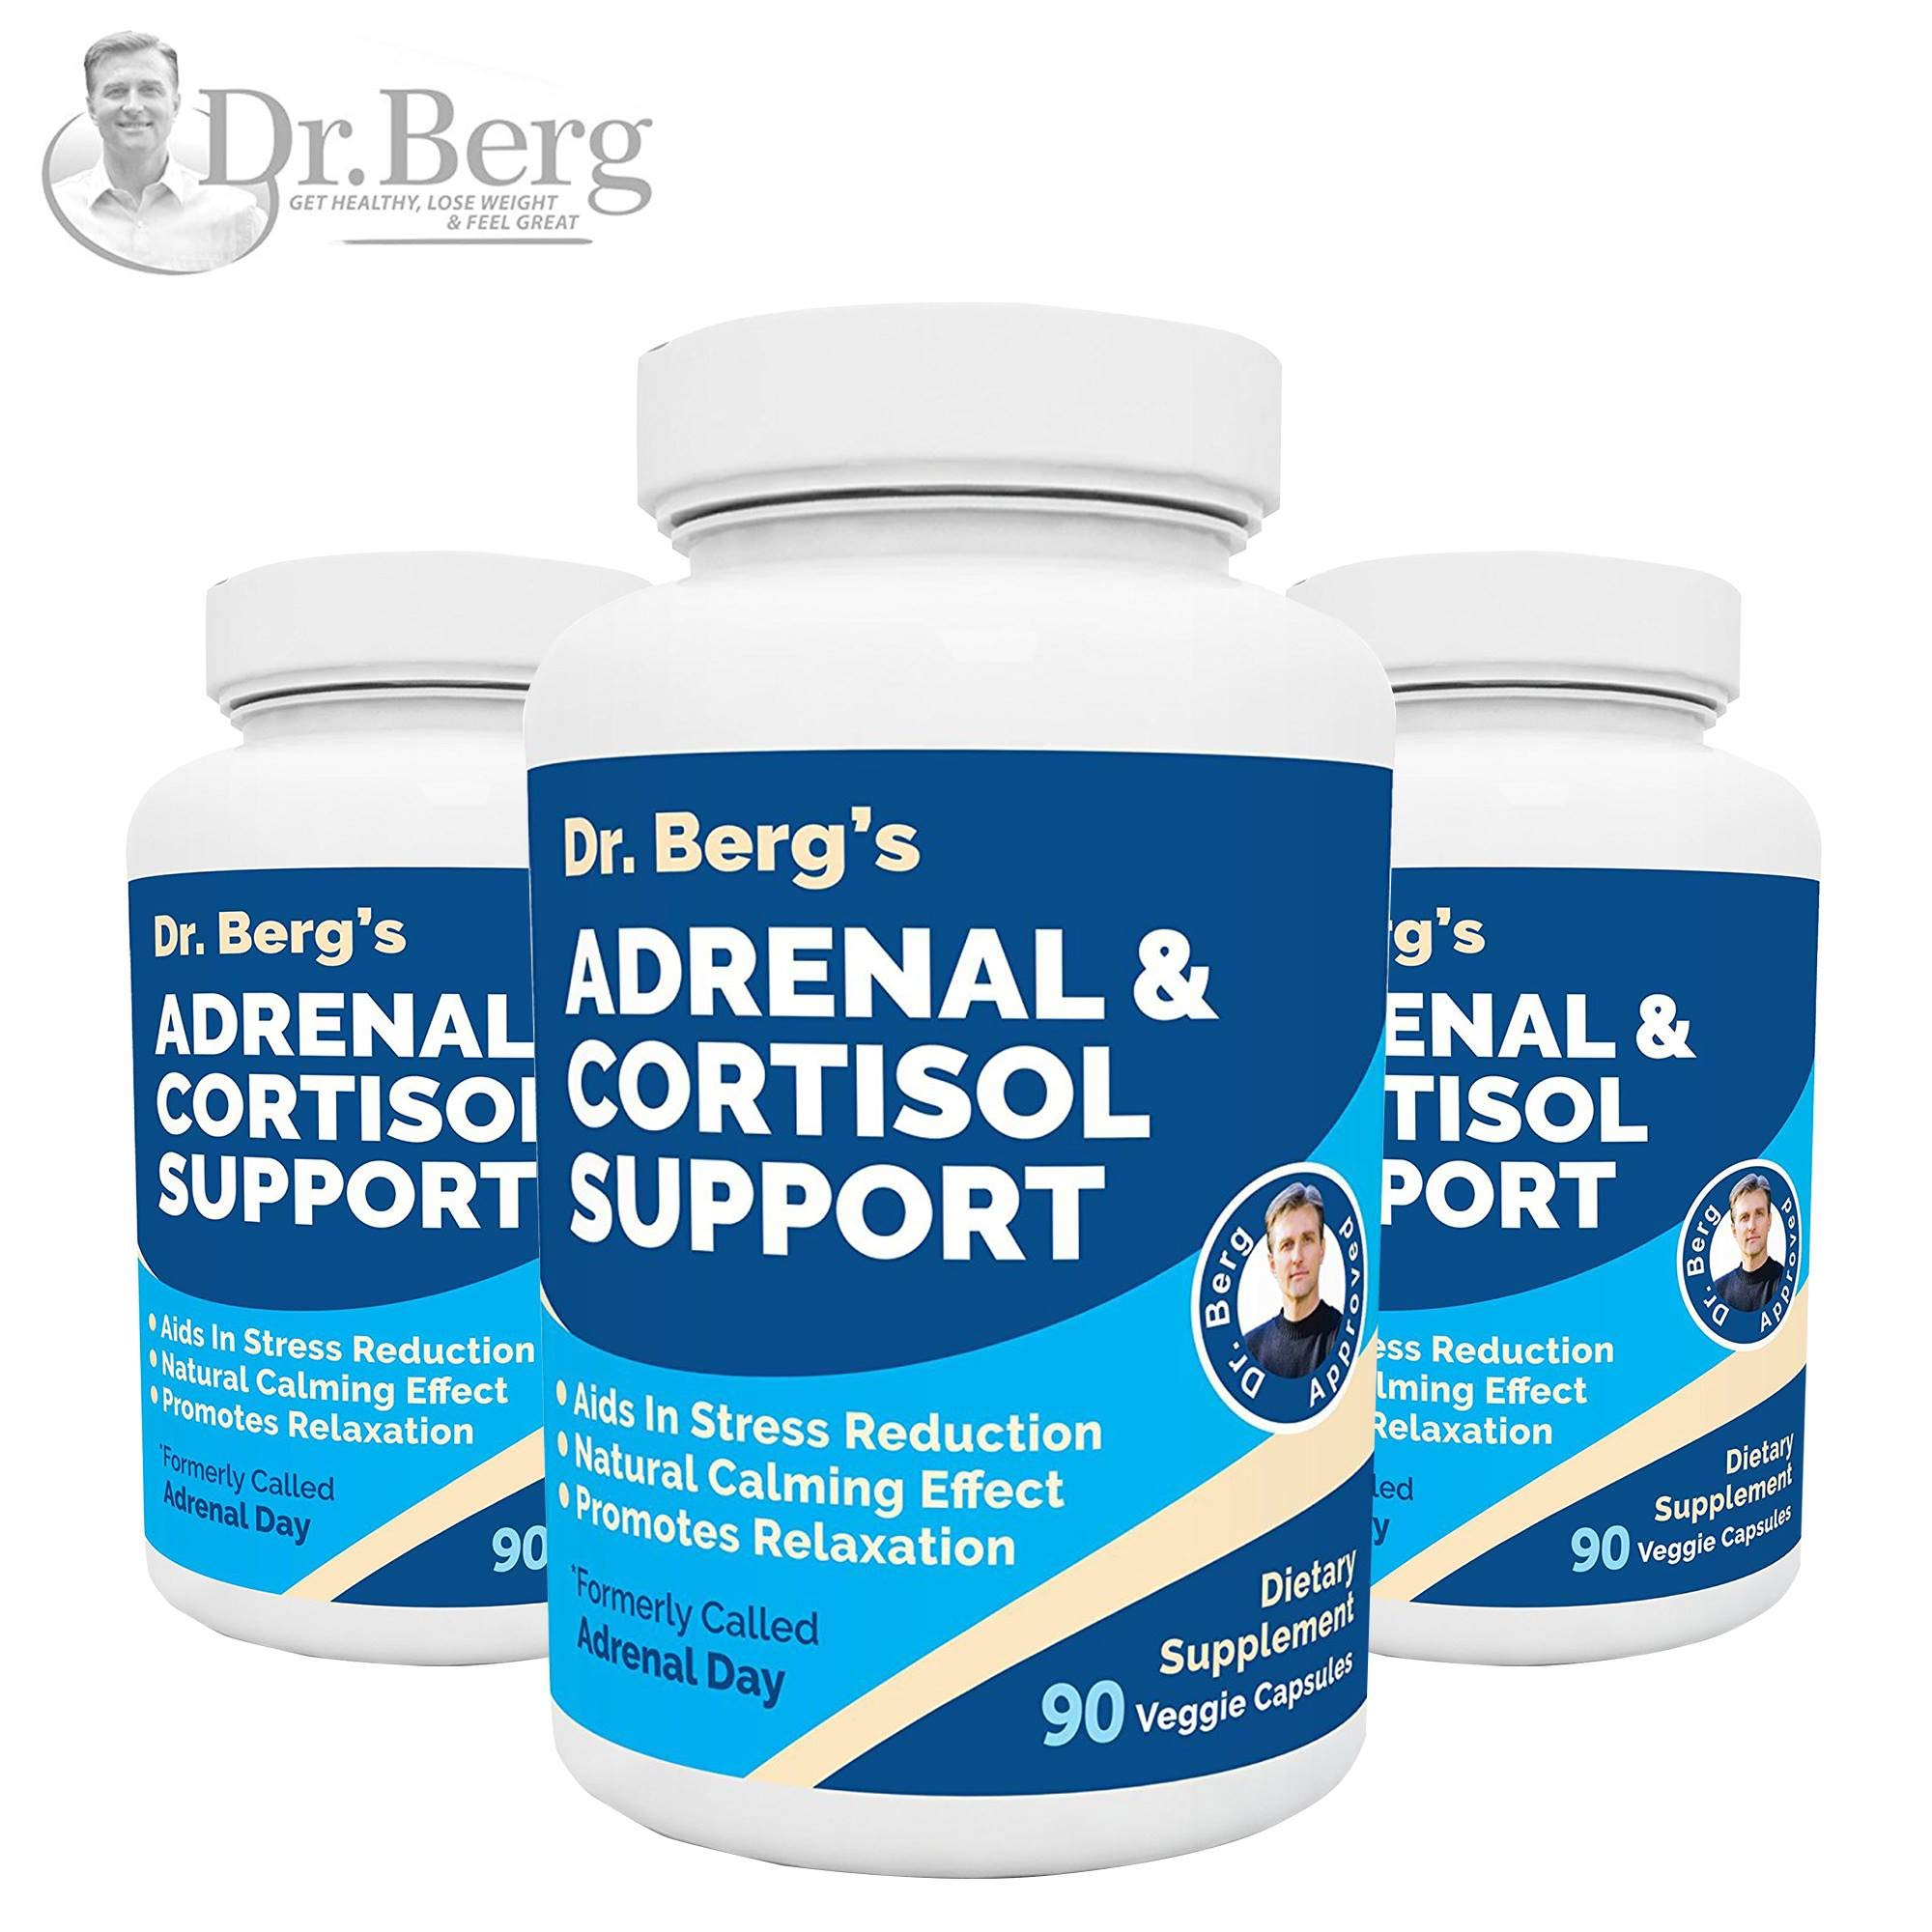 Dr. Berg's Adrenal & Cortisol Support: Natural Stress & Anxiety Relief for a Better Mood, Focus and Relaxation; Turn Off Your Busy Mind, Vegetarian Ingredients : 90 Capsules (3 Pack)